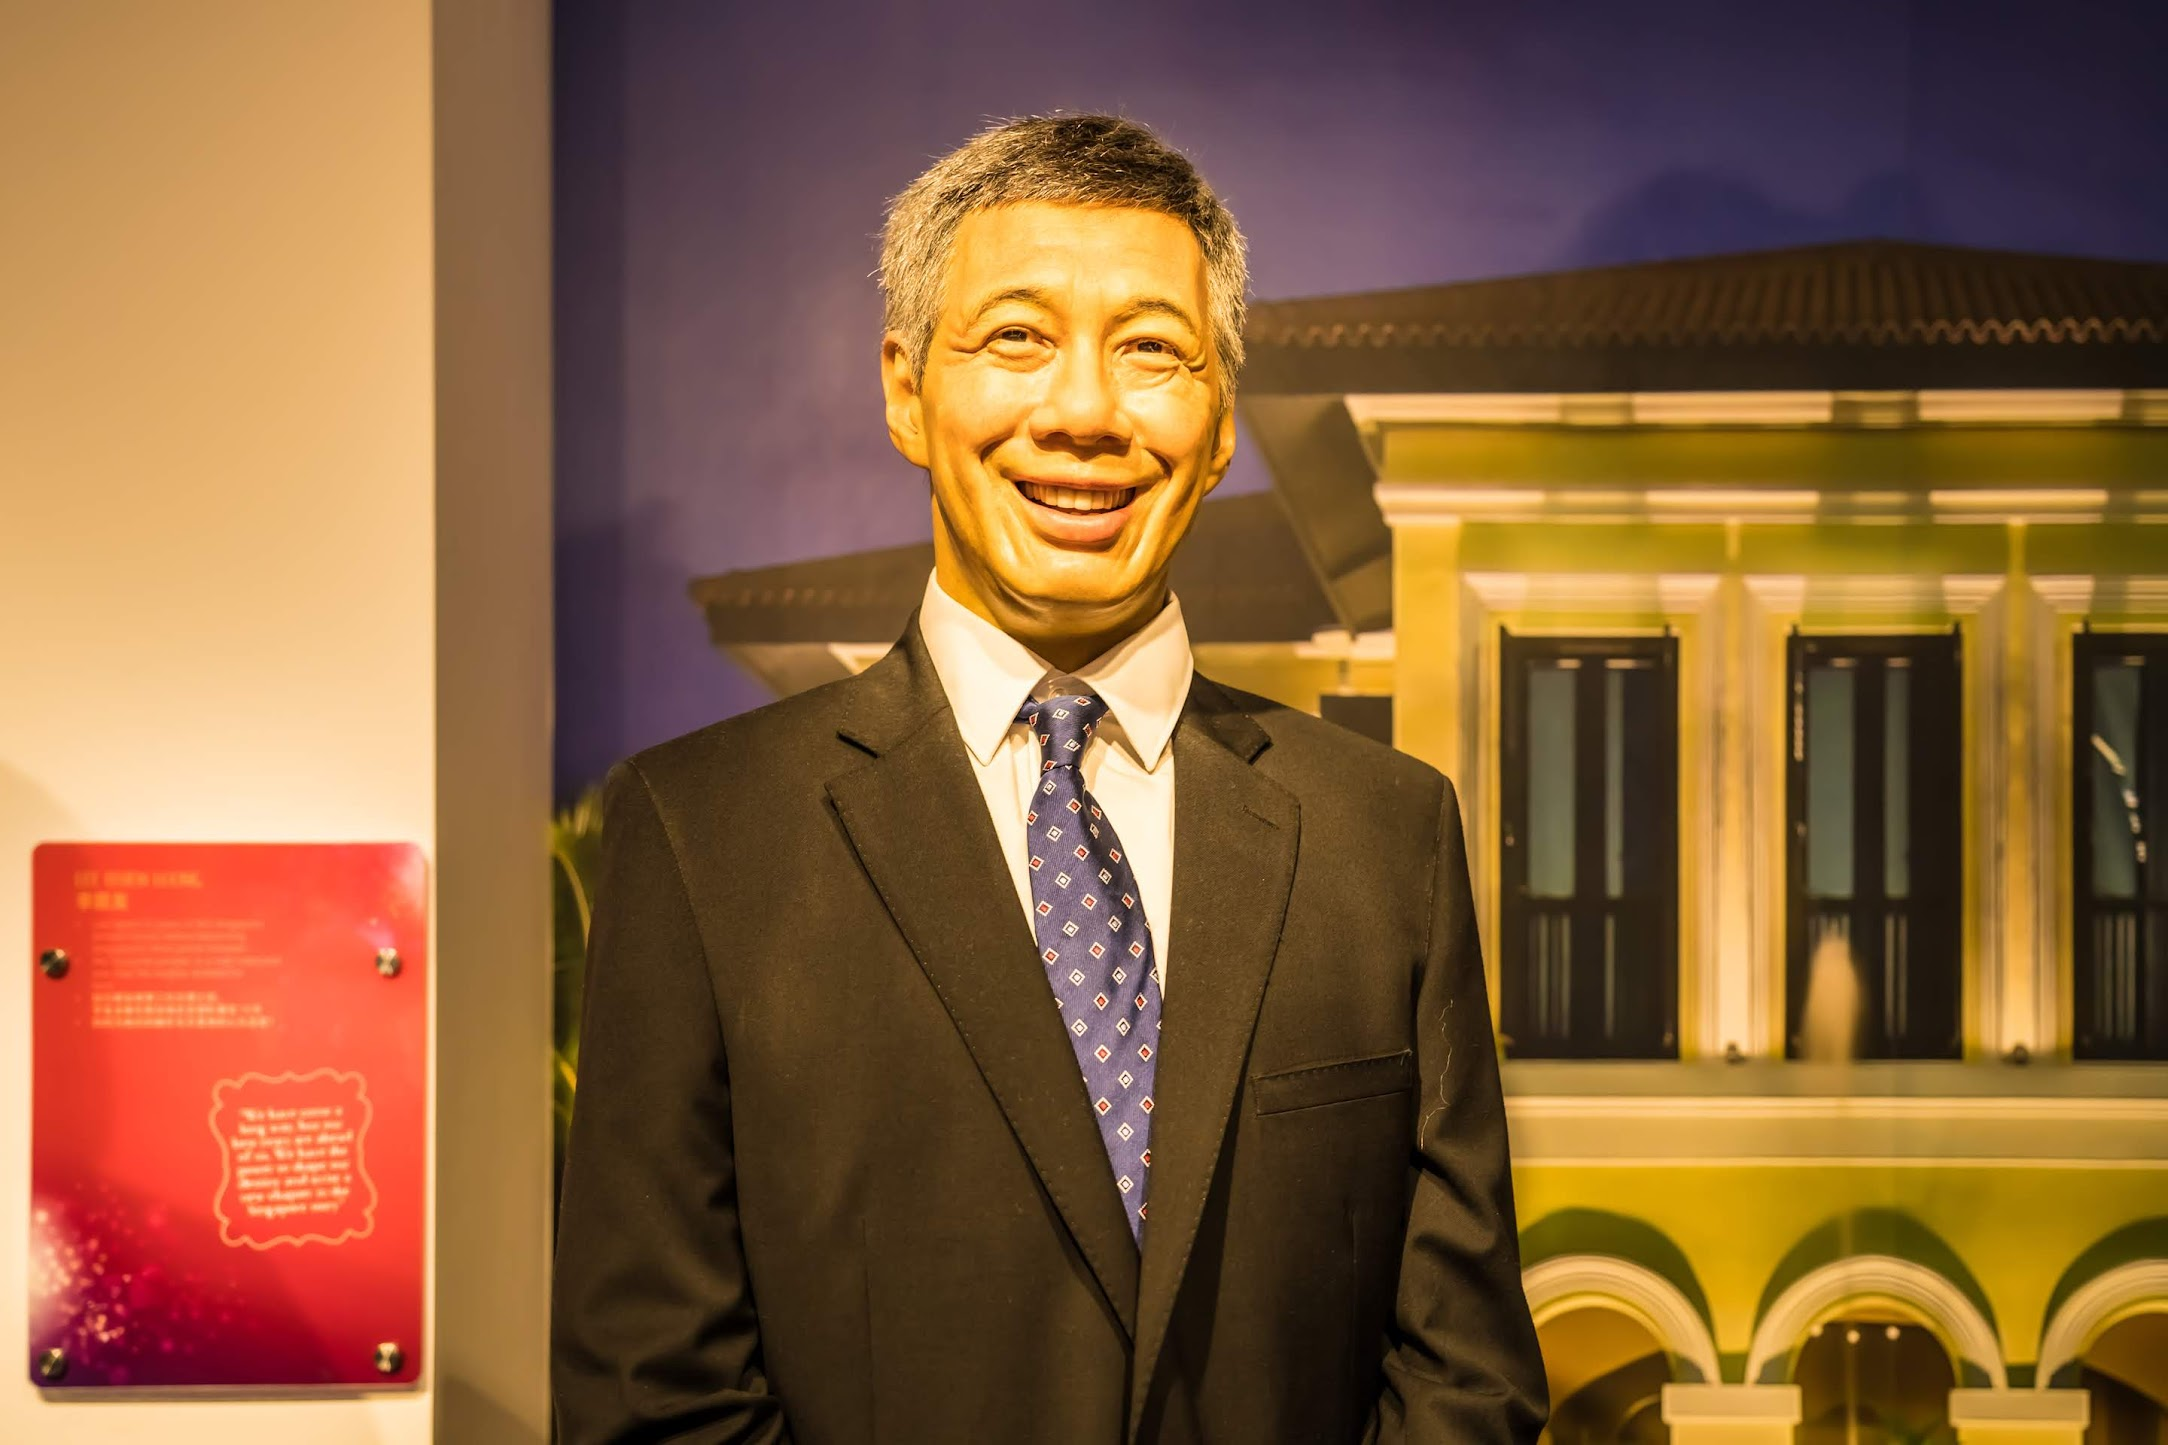 Singapore Sentosa Island Madame Tussauds Singapore Lee Hsien Loong